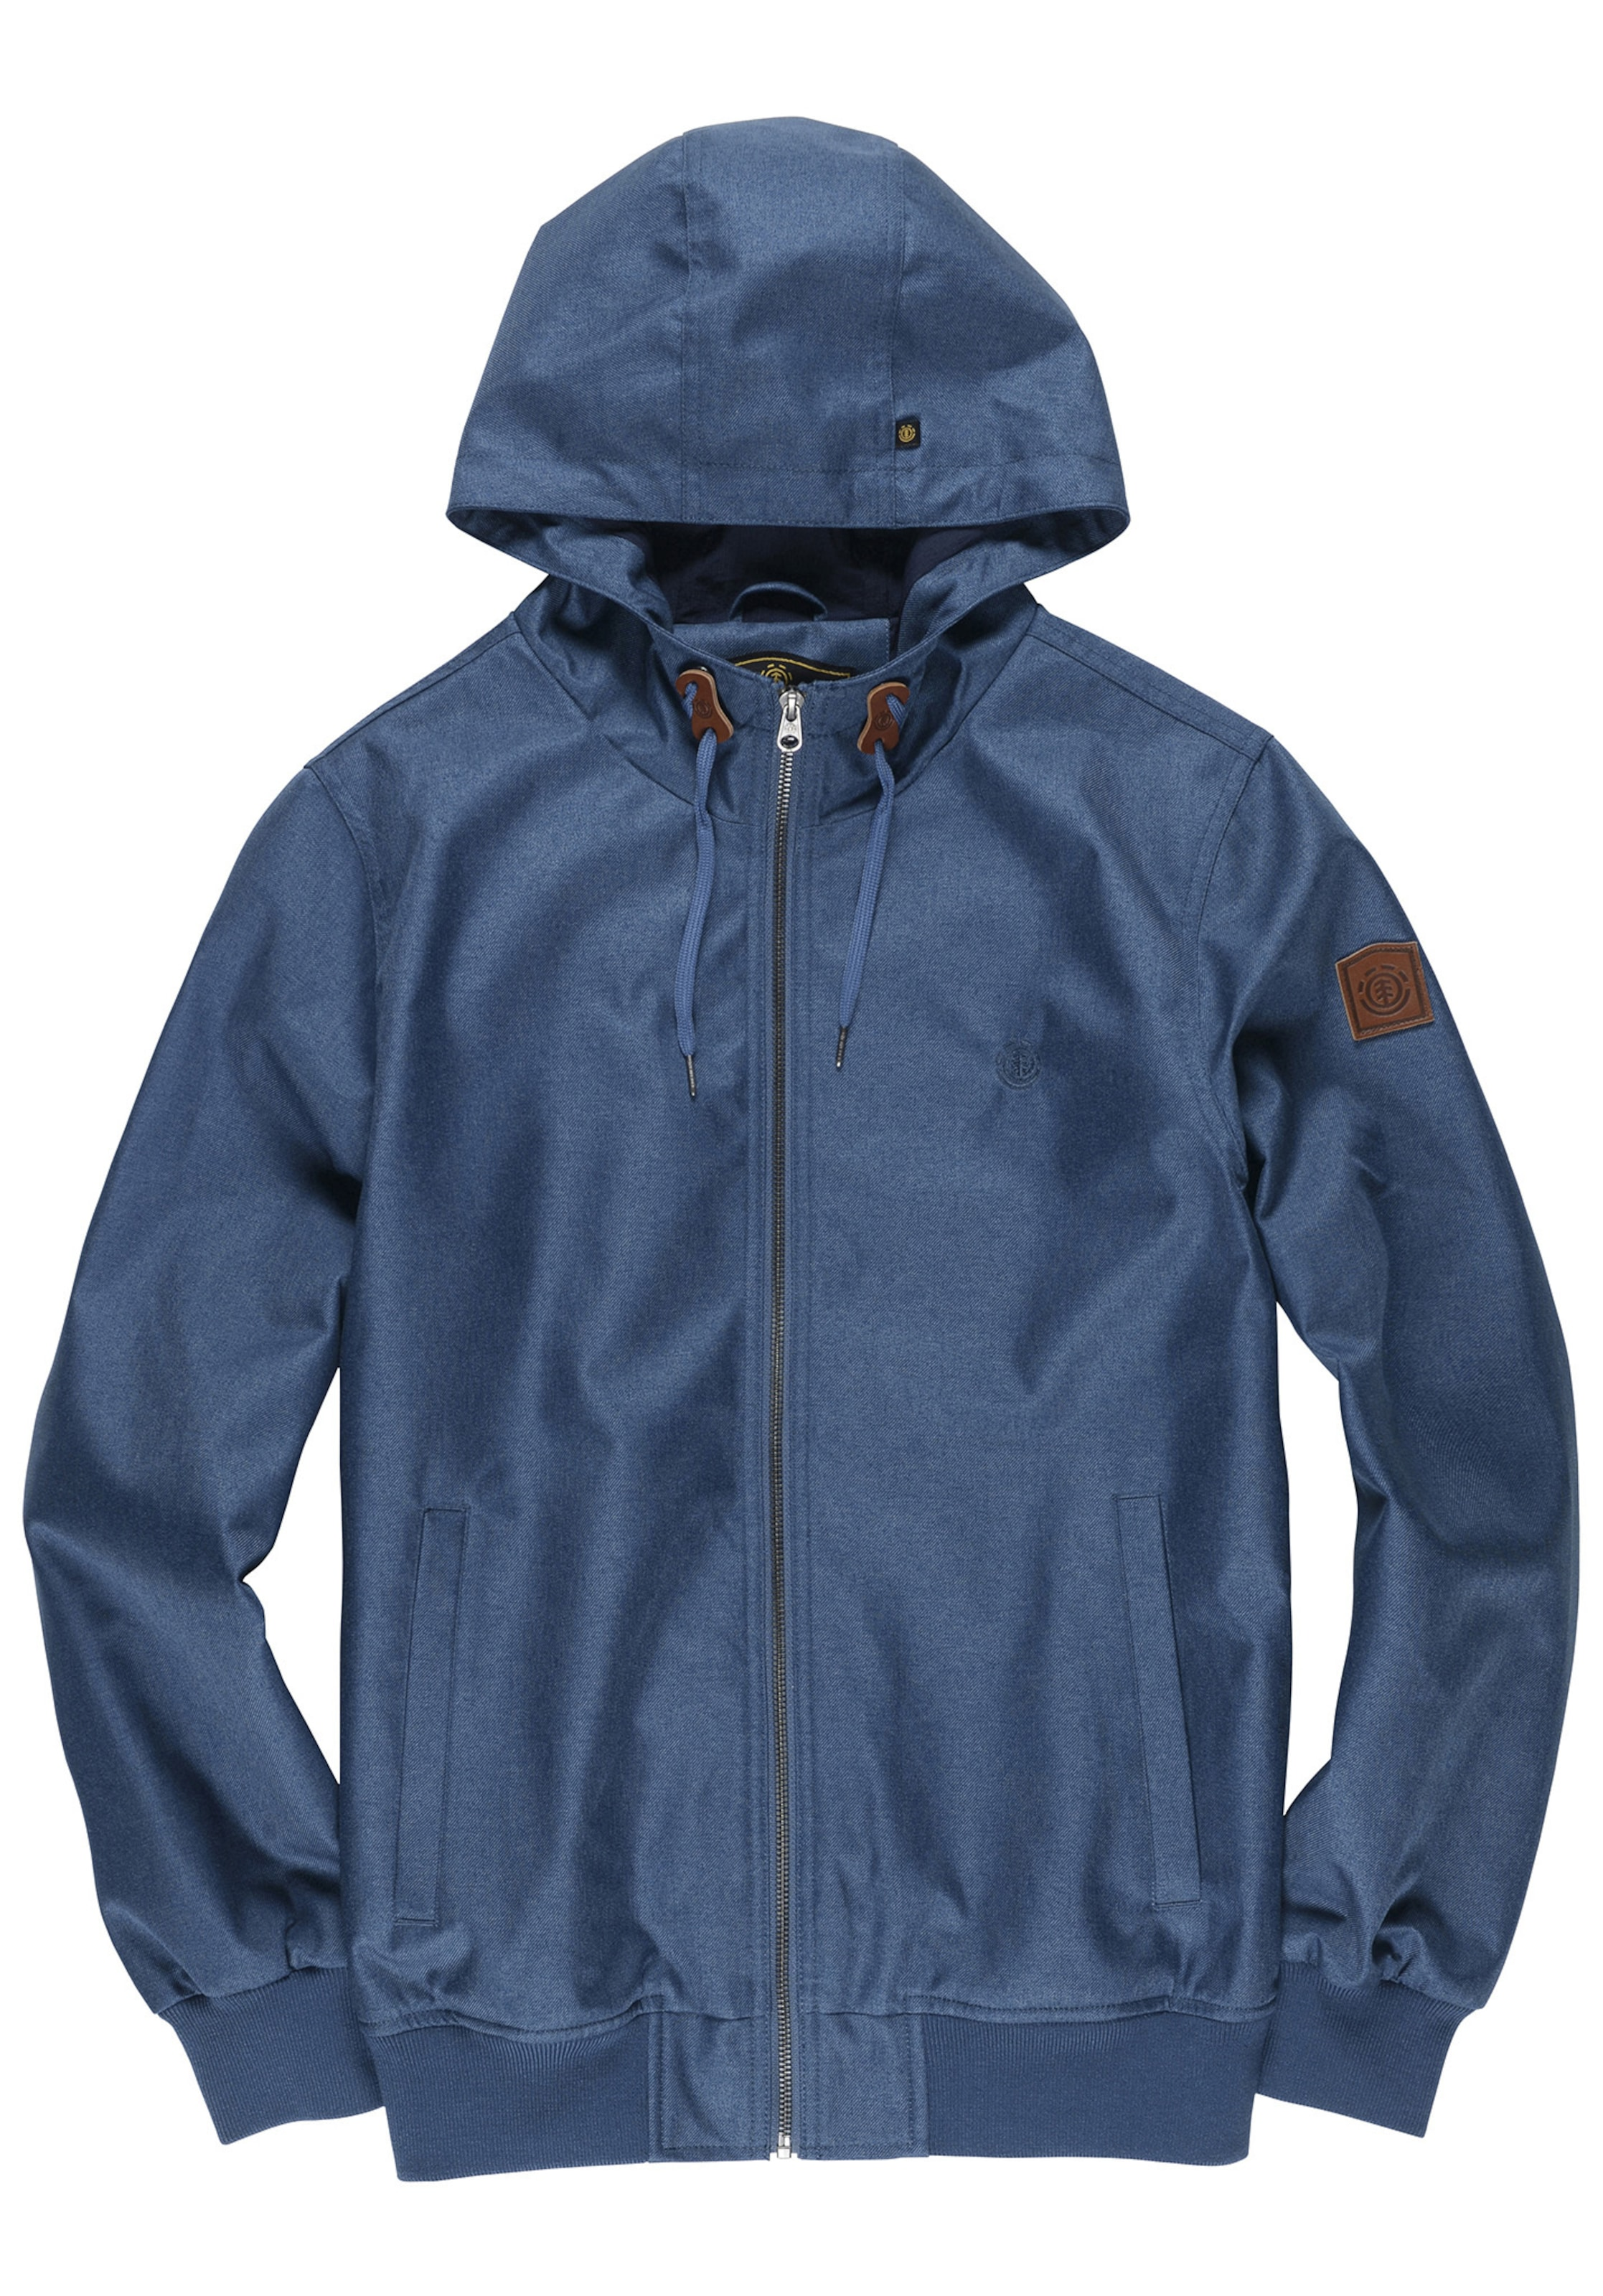 In Jacke Light' Navy Element 'dulcey OPXTkiZu